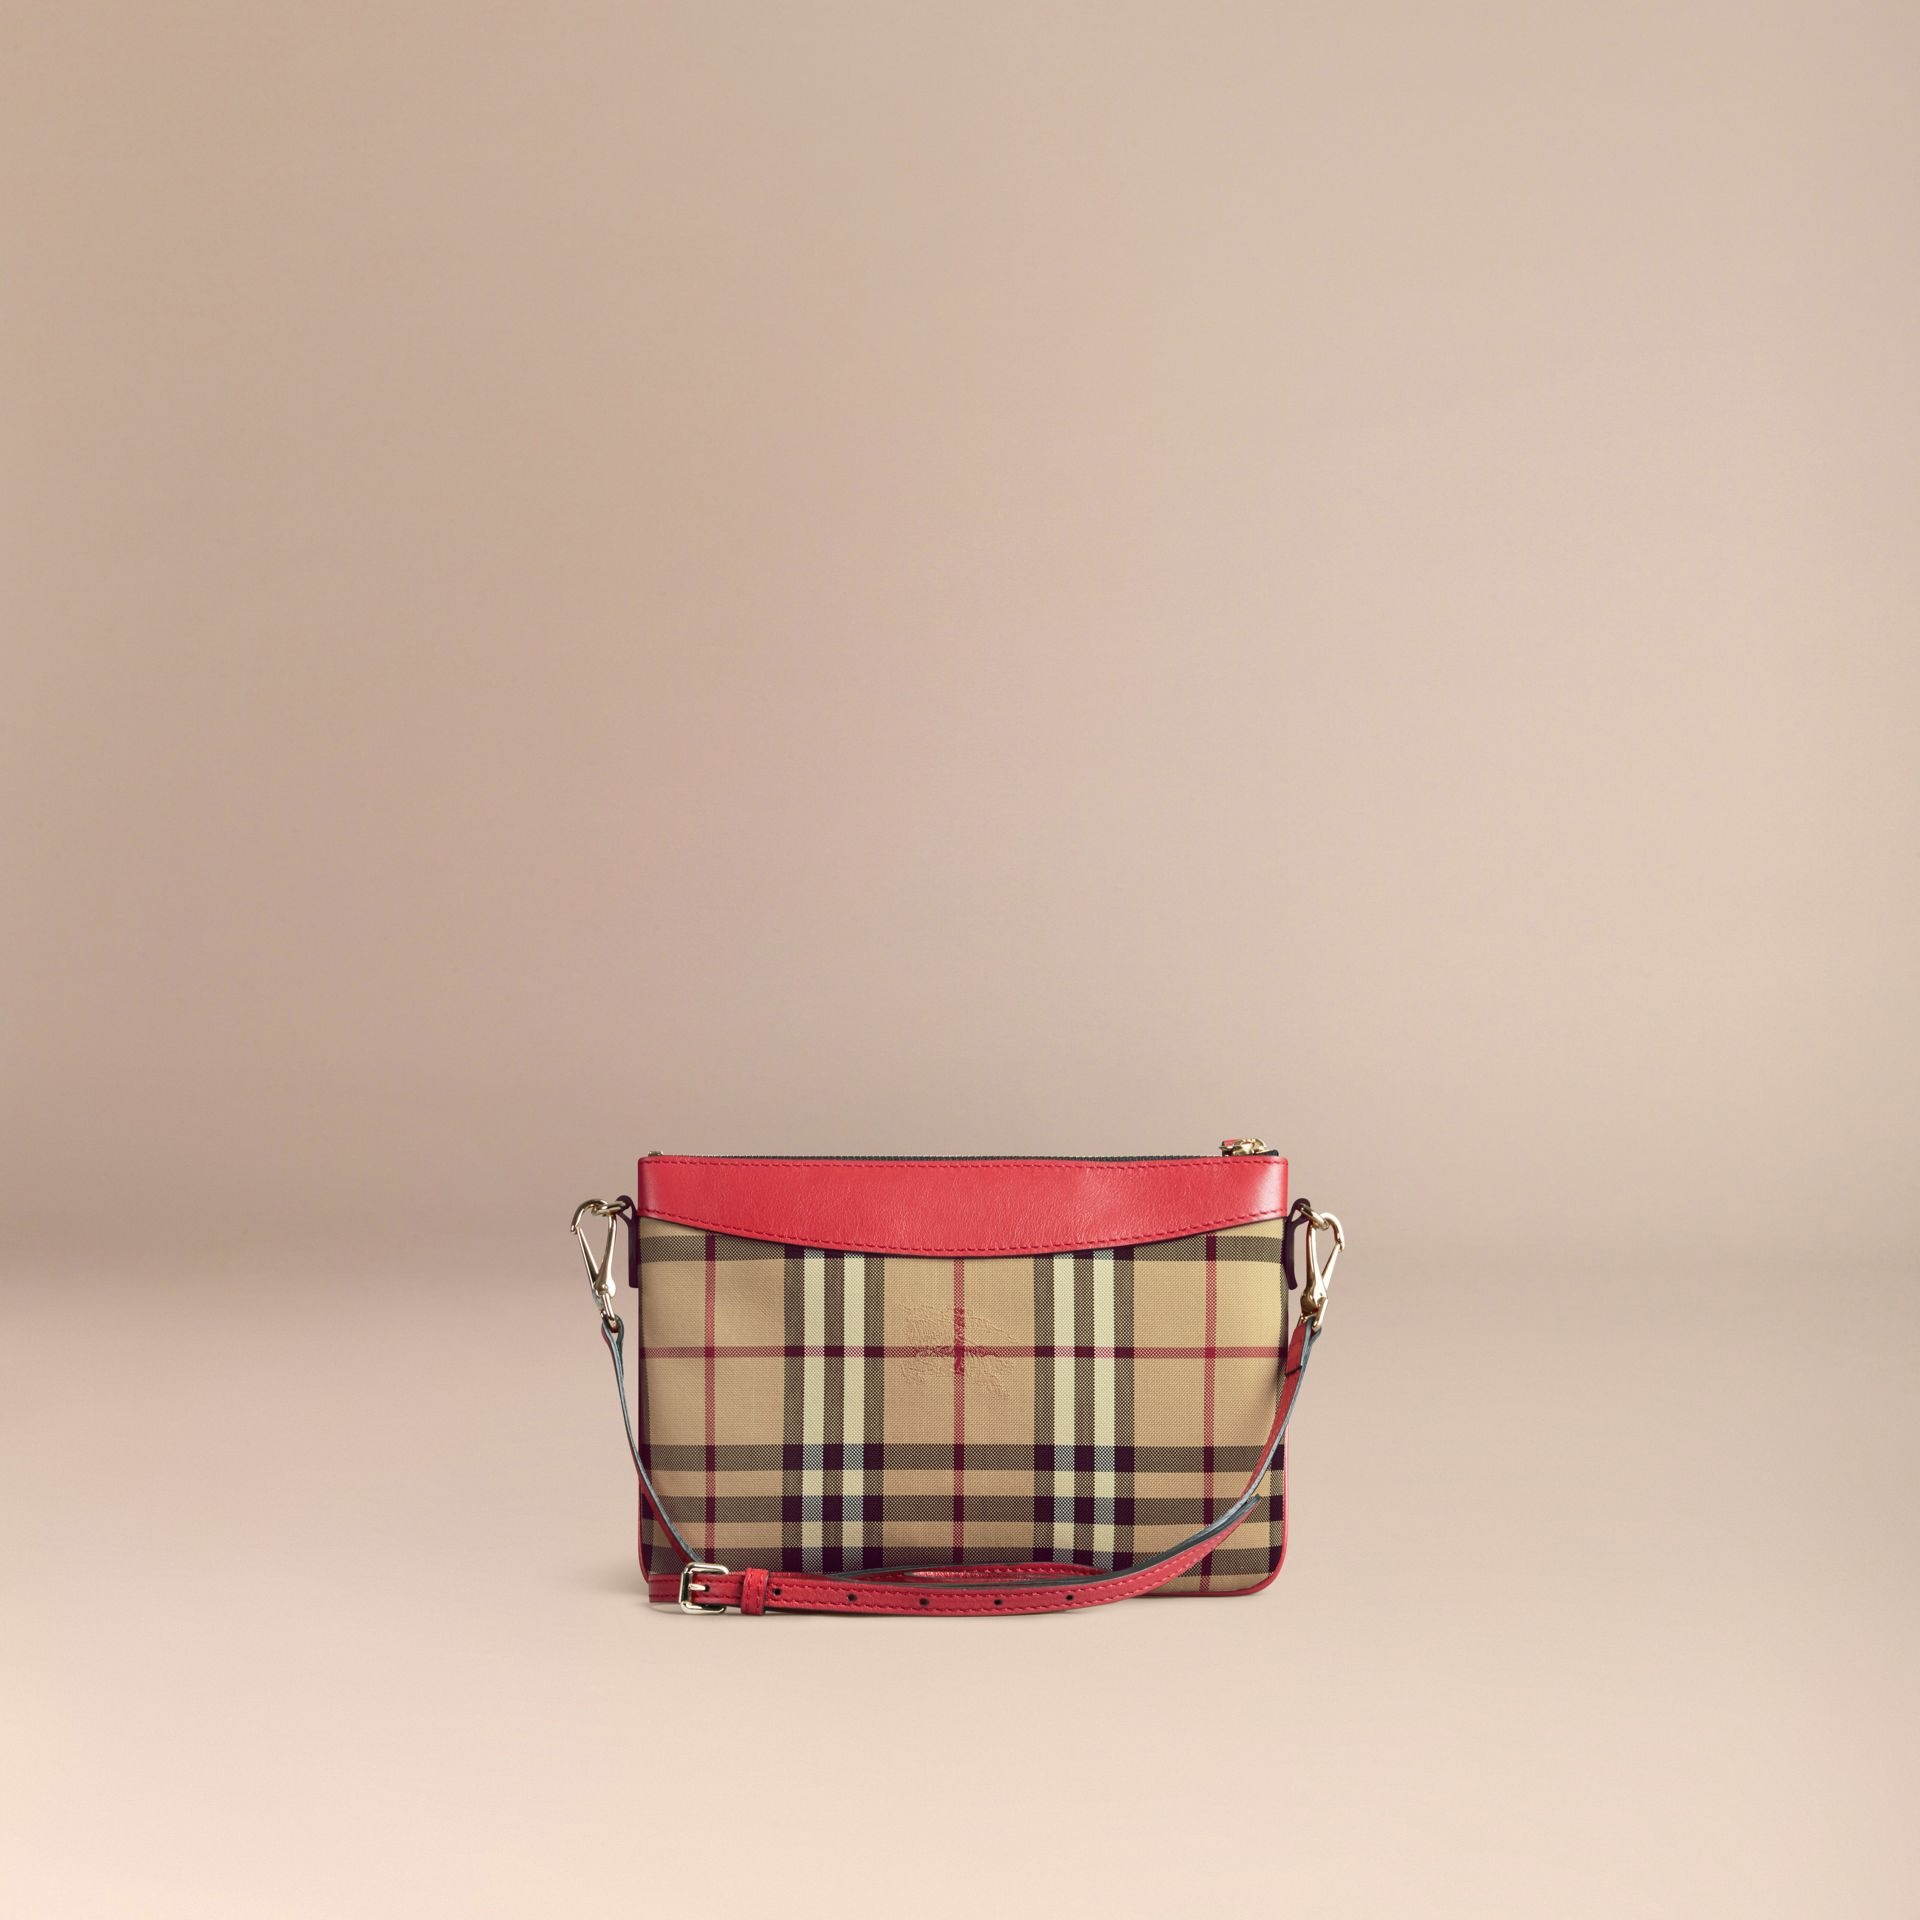 Horseferry Check and Leather Clutch Bag Parade Red - gallery image 5